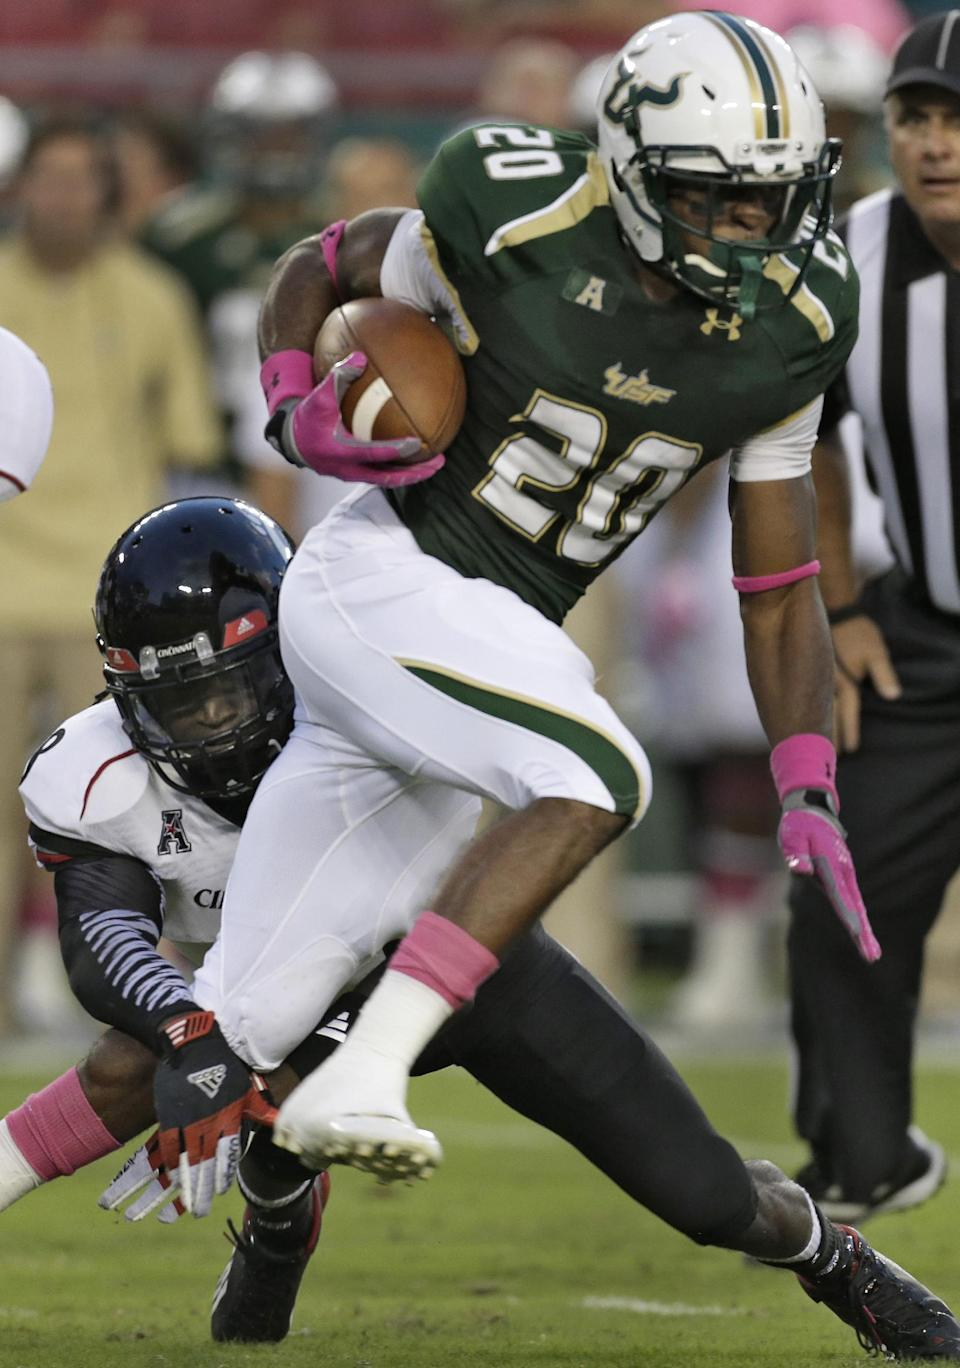 South Florida's Marcus Shaw (20) is tripped up by Cincinnati's Adrian Witty, left, during the first quarter of an NCAA college football game on Saturday, Oct. 5, 2013, in Tampa, Fla. (AP Photo/Chris O'Meara)